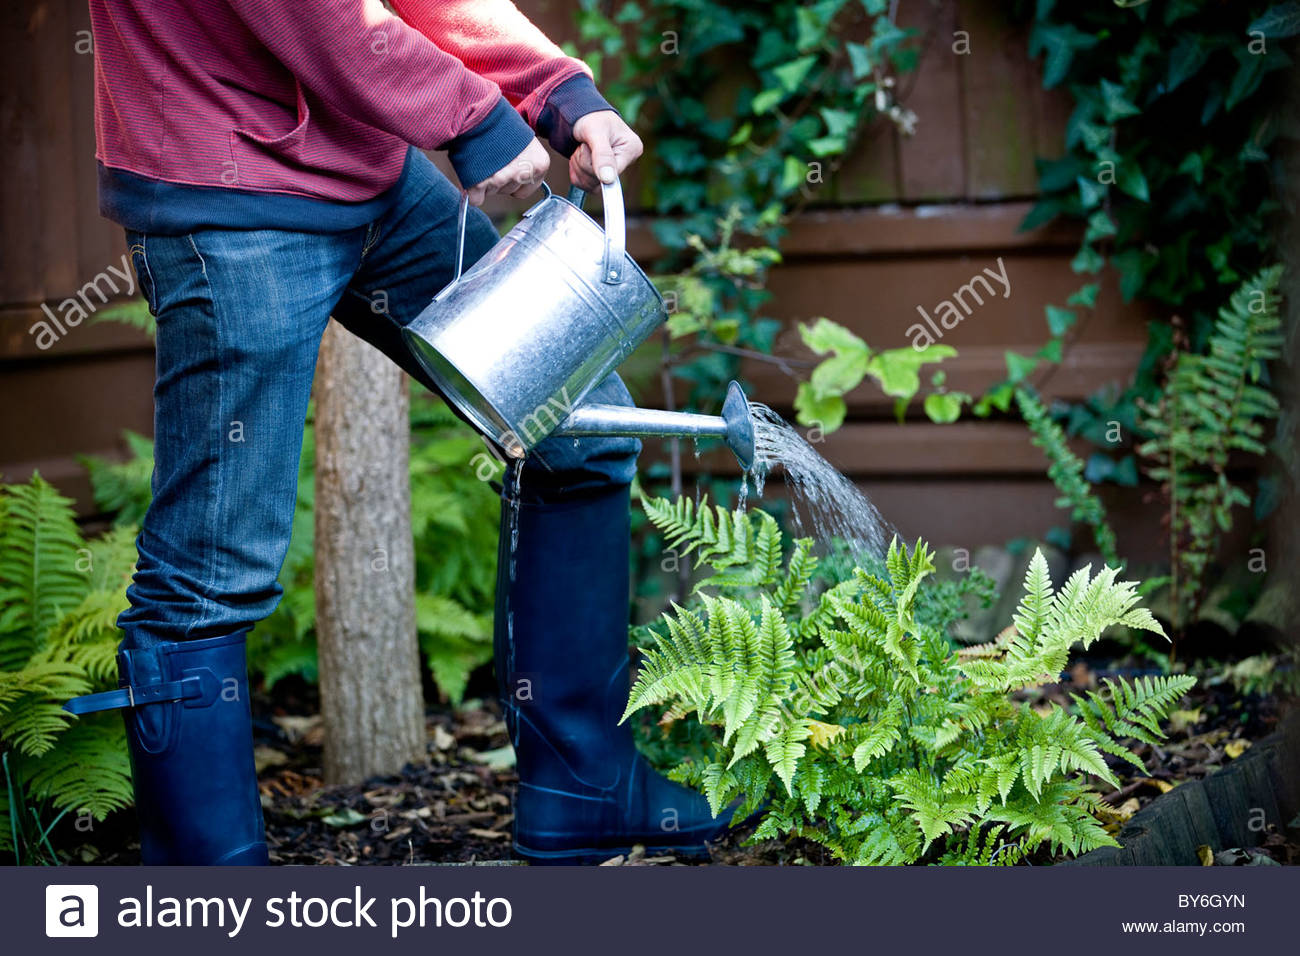 A man watering his garden - Stock Image